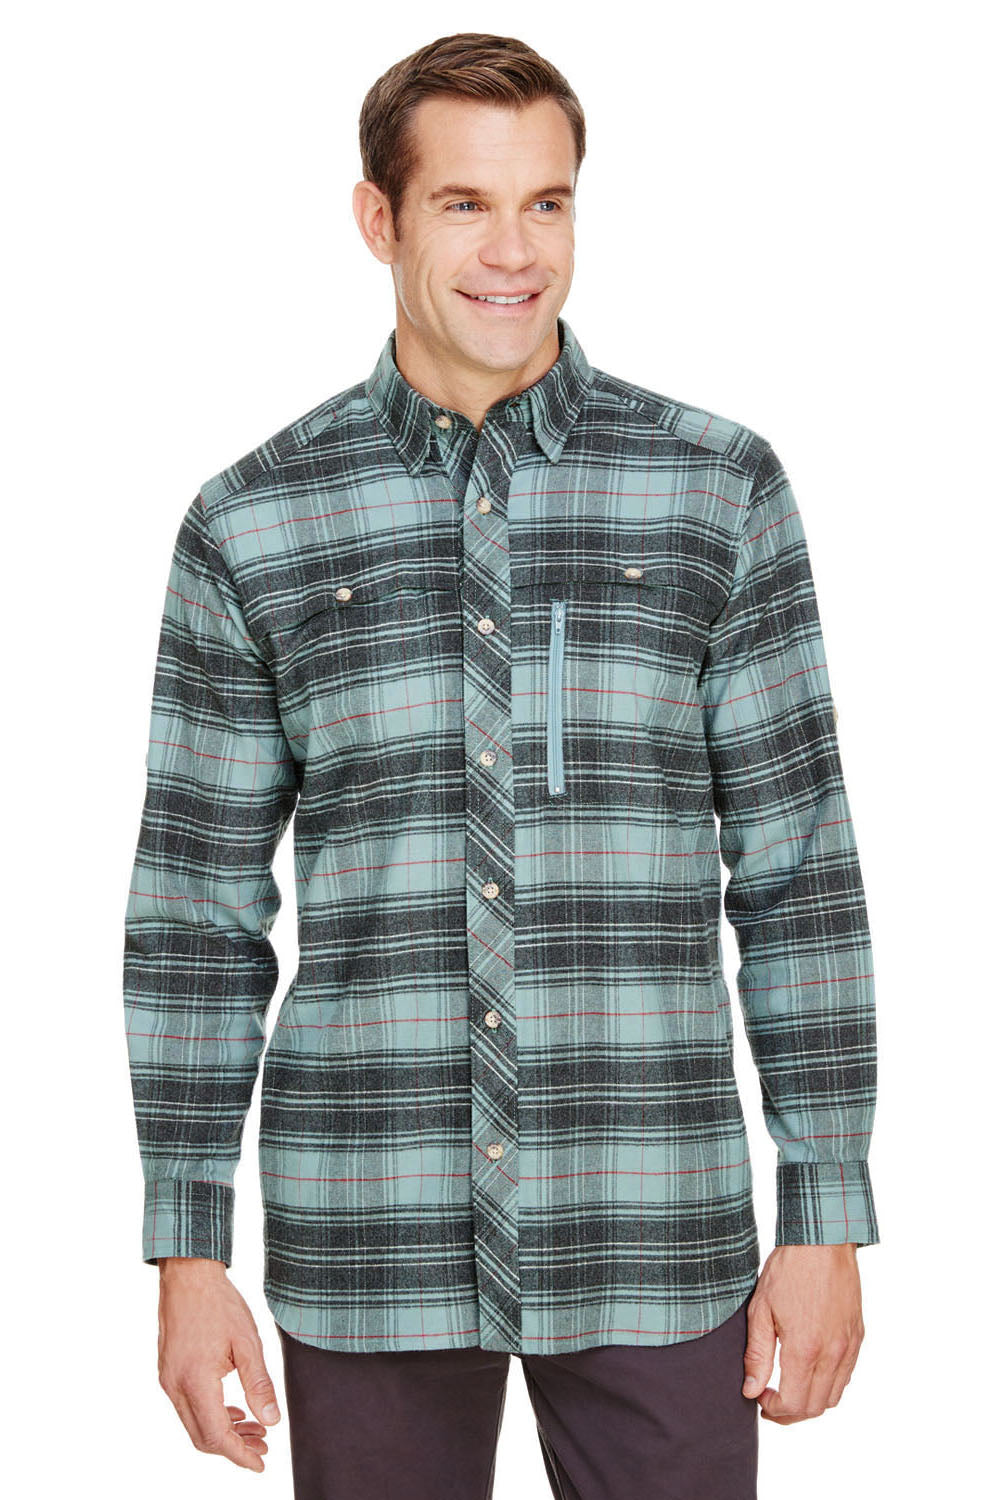 Backpacker BP7091 Mens Stretch Flannel Long Sleeve Button Down Shirt w/ Double Pockets Teal Blue Front